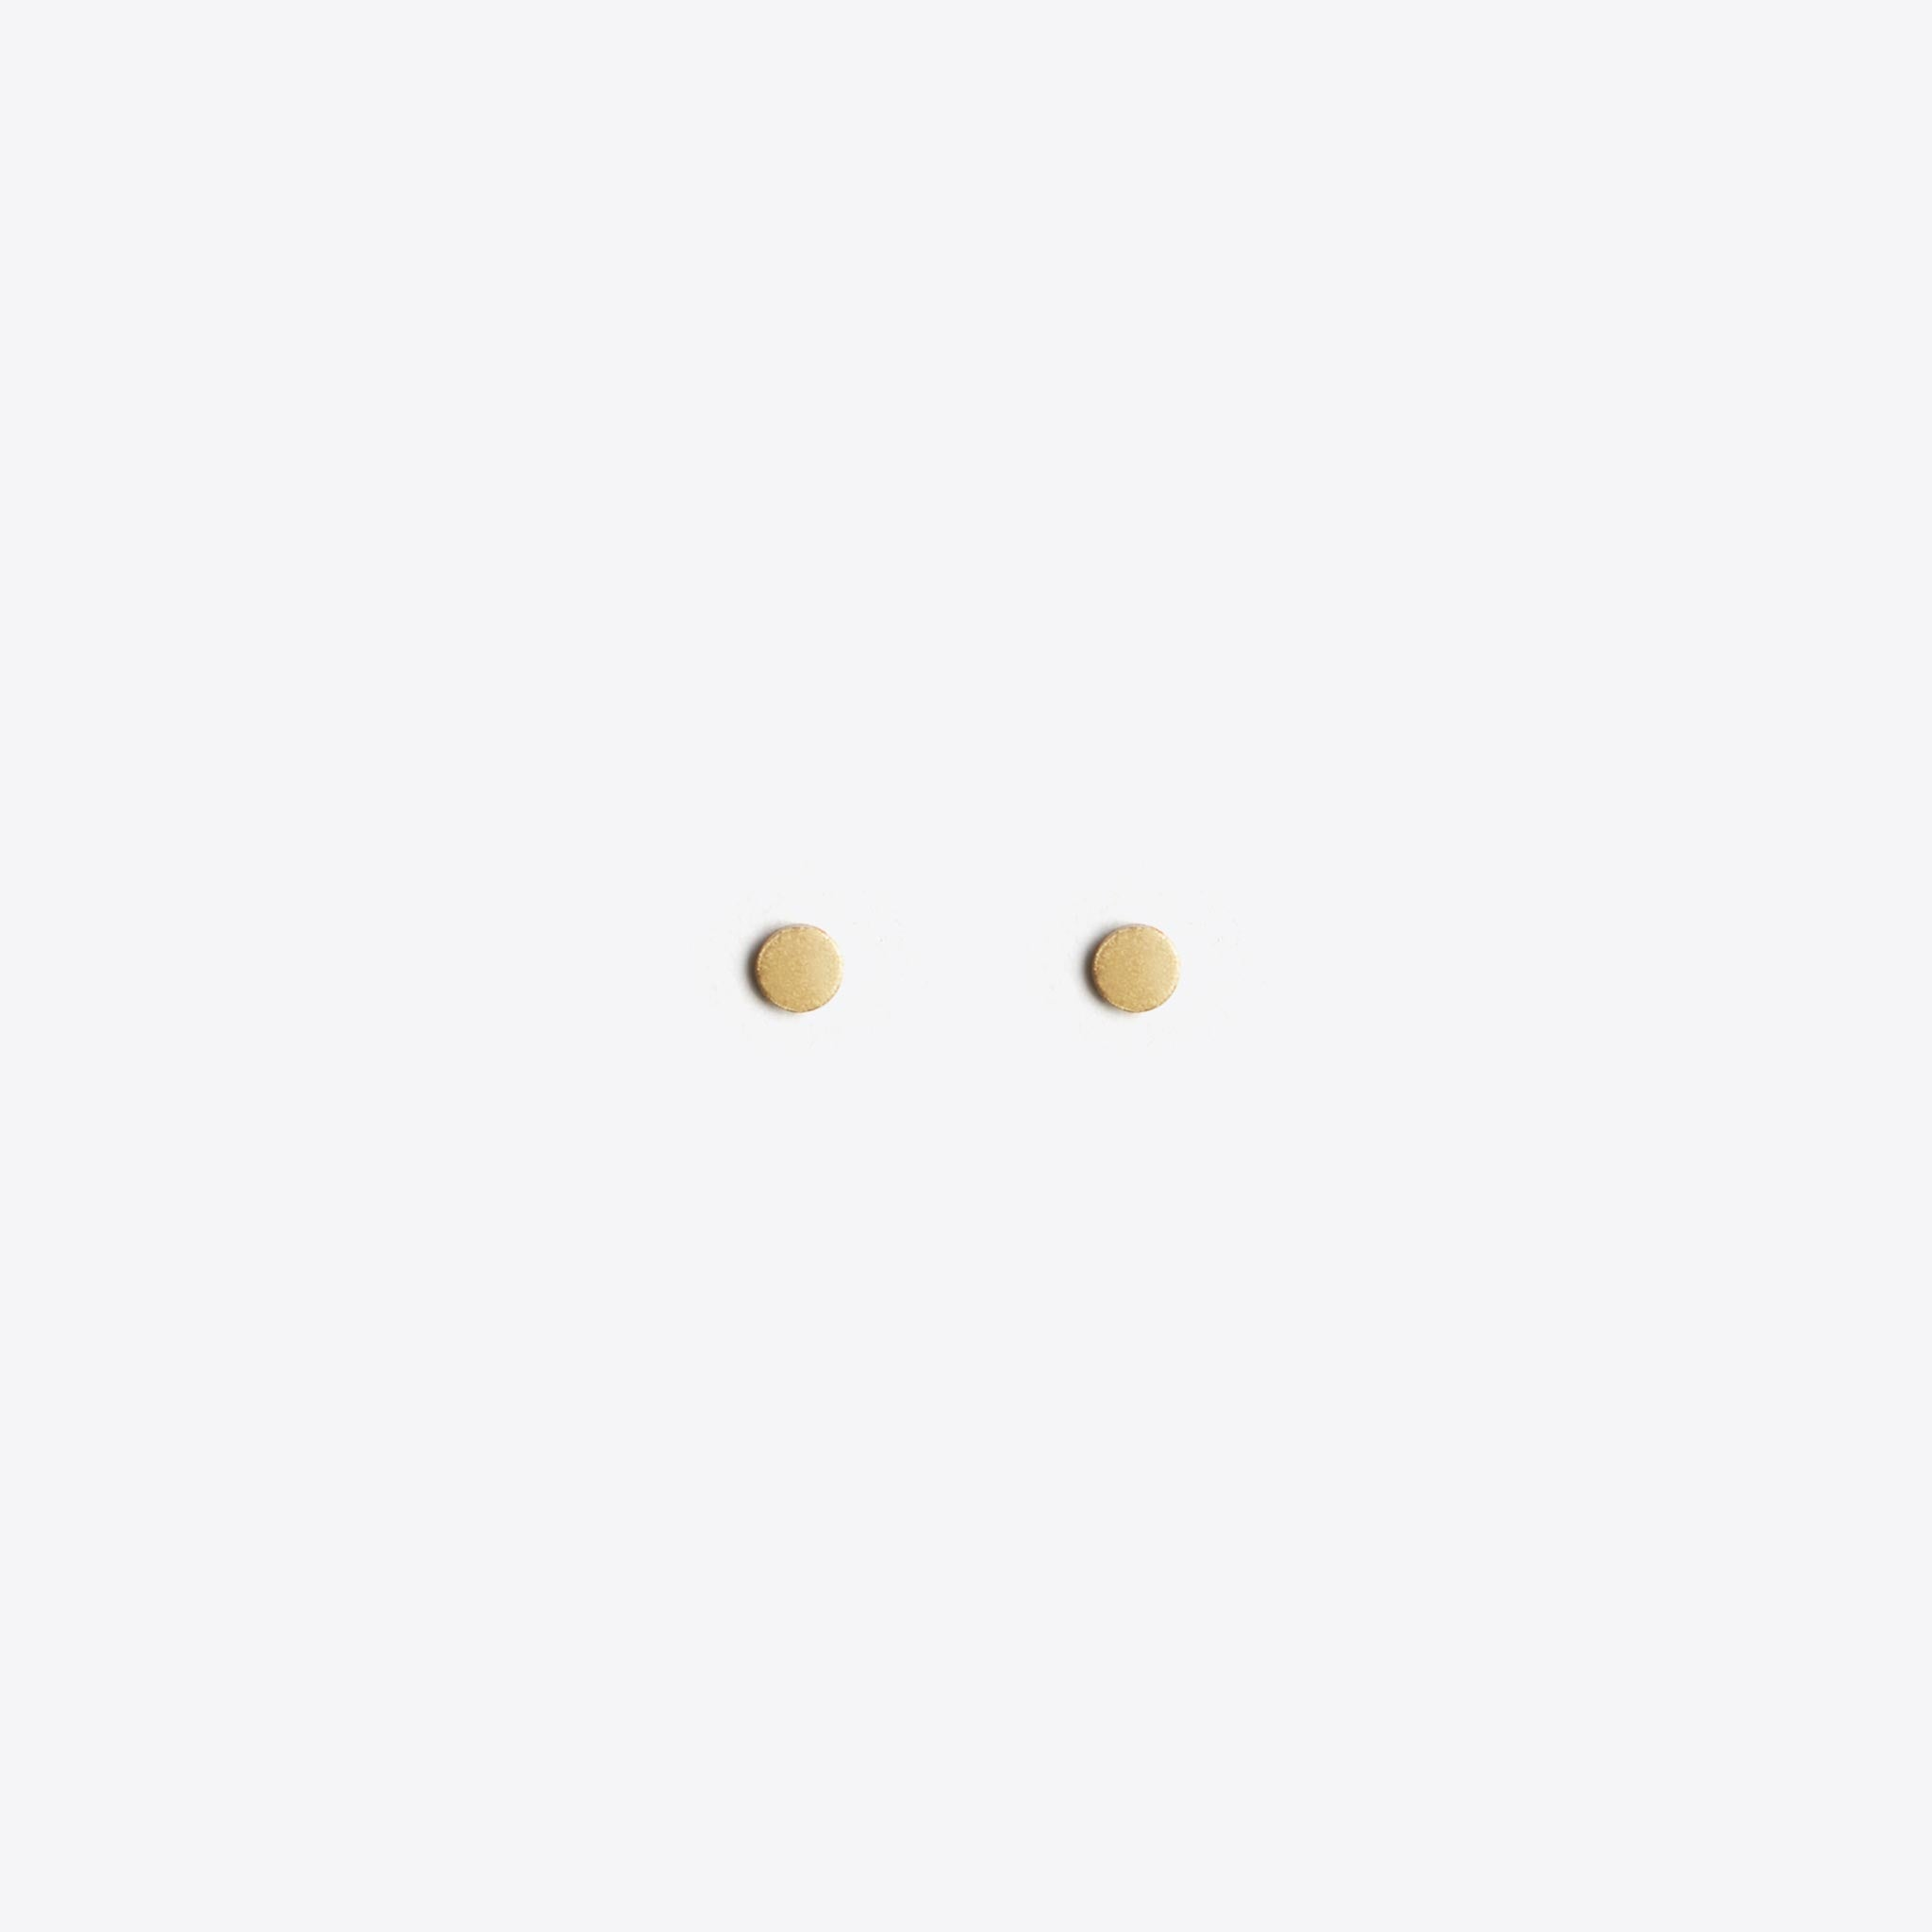 Wanderlust Life Ethically Handmade jewellery made in the UK. Minimalist gold and fine cord jewellery. gold stud earring, petite unity circle